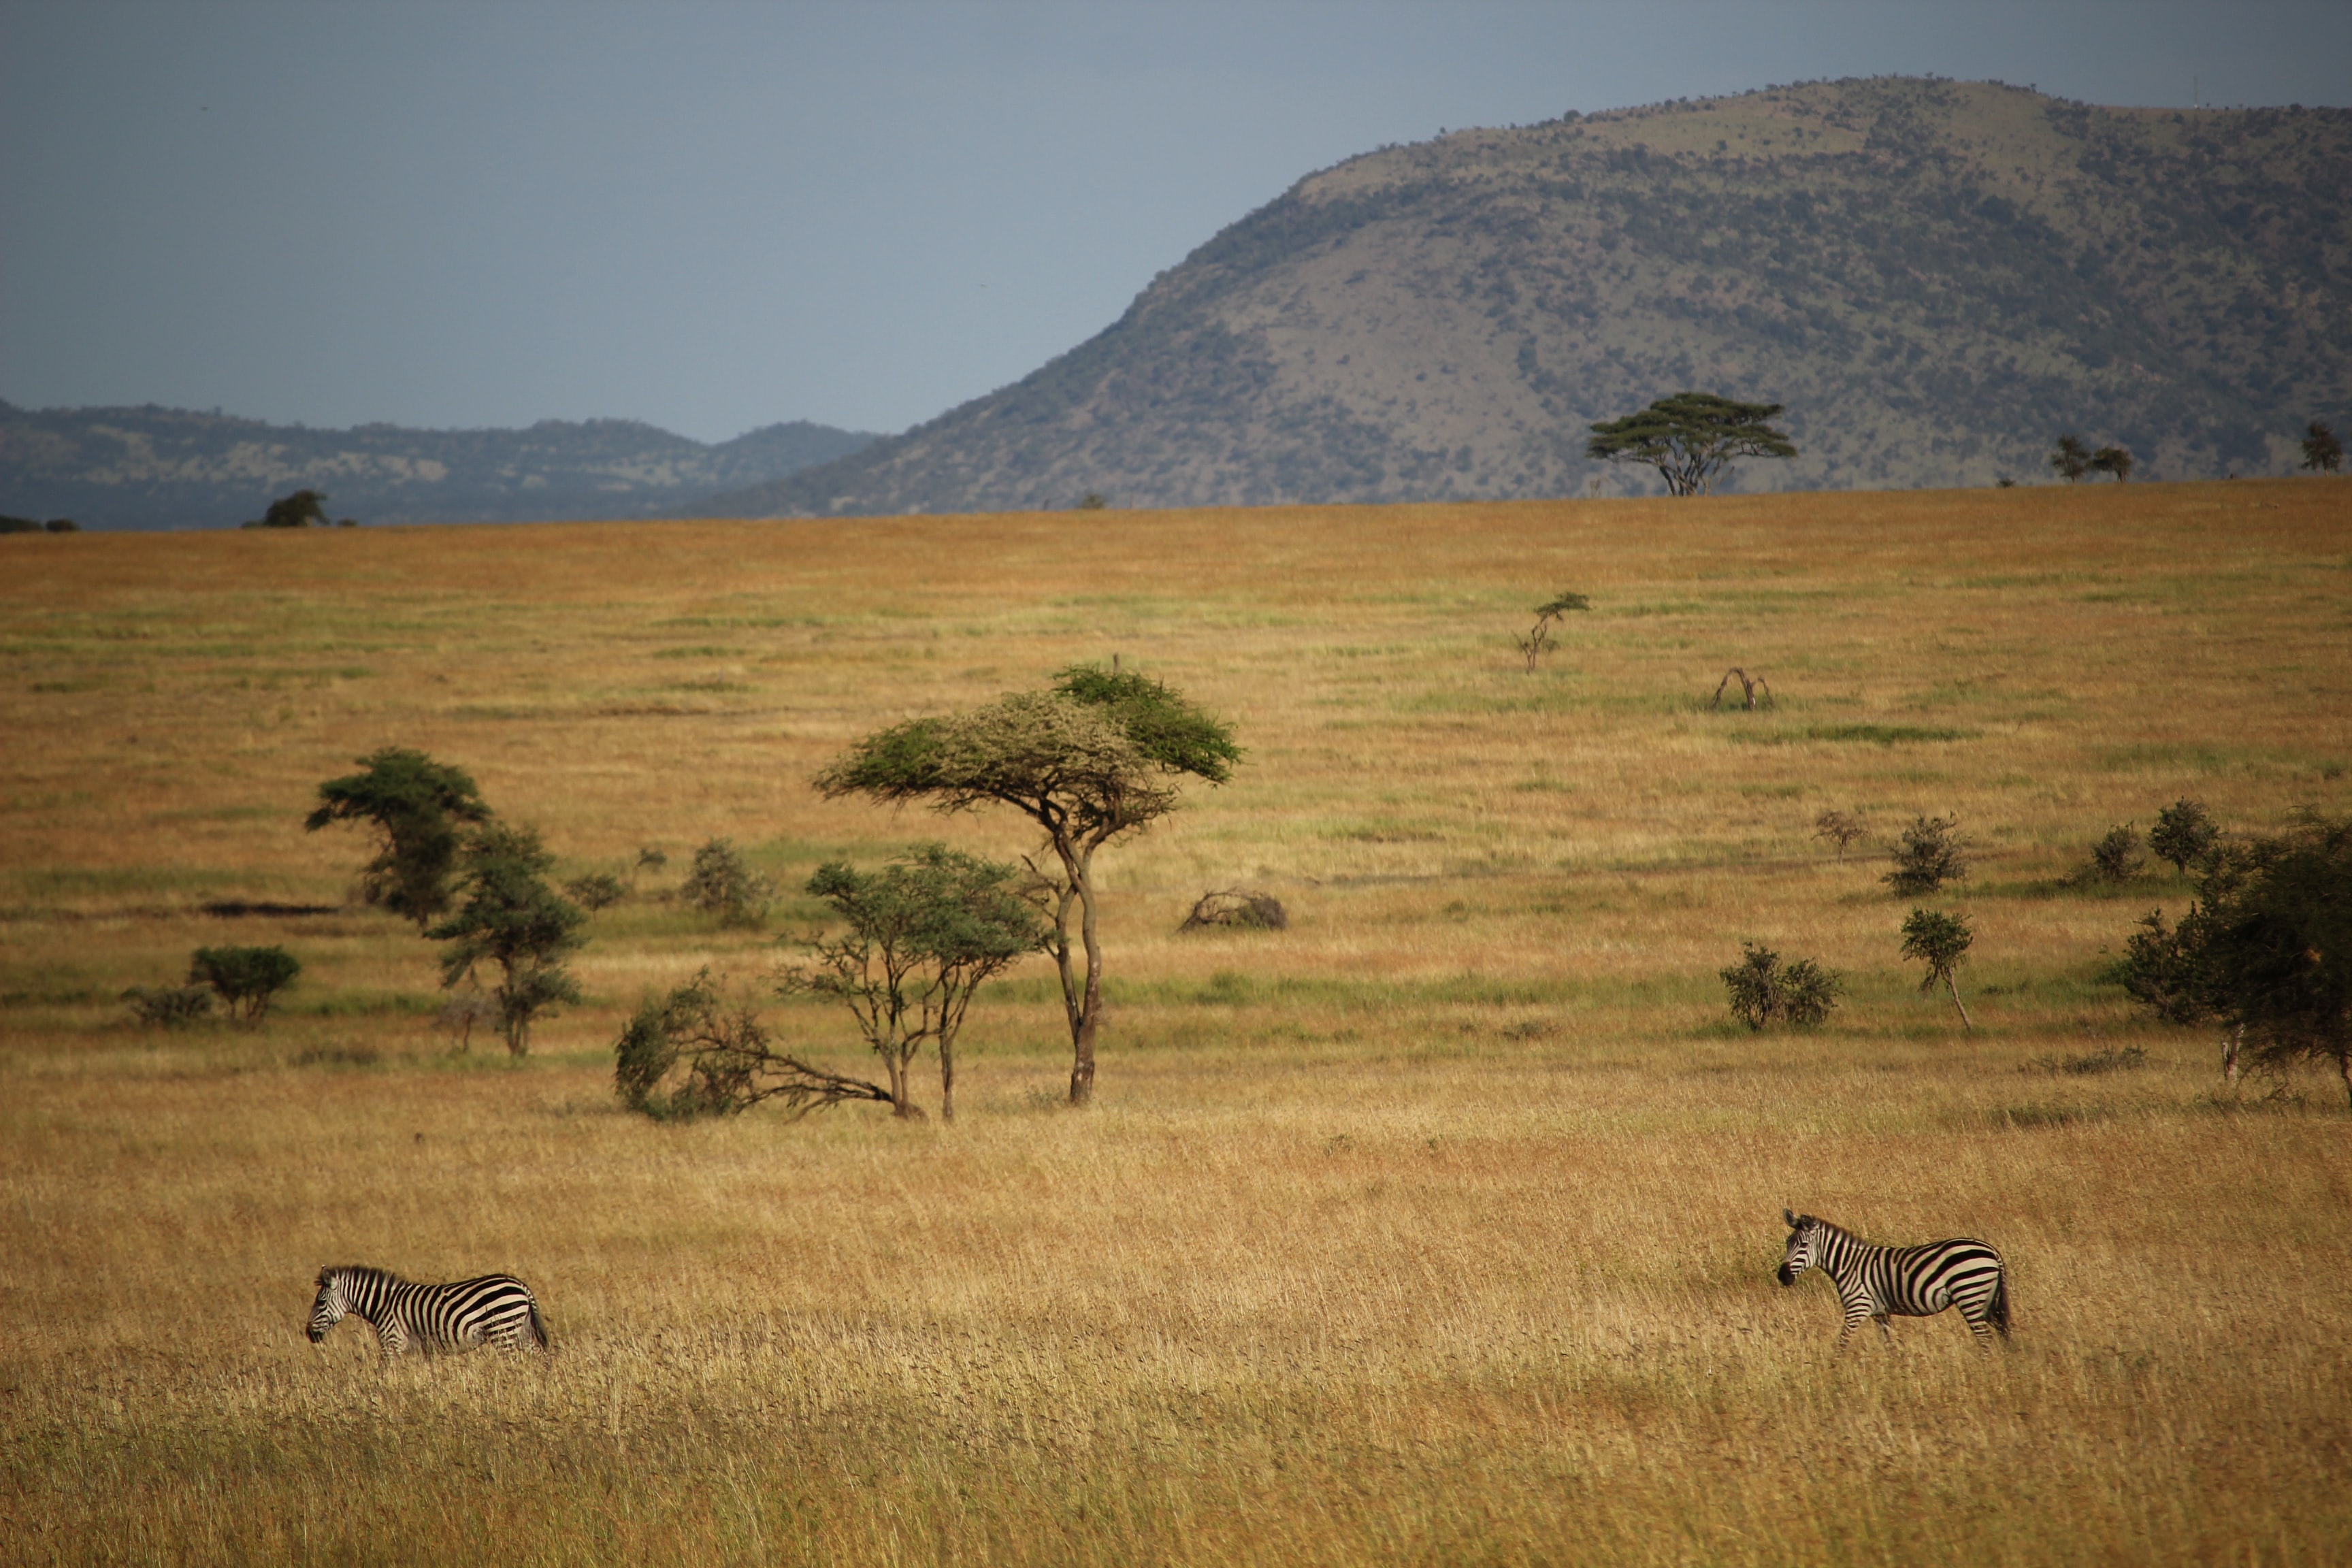 two zebras on grass field and mountain at distance